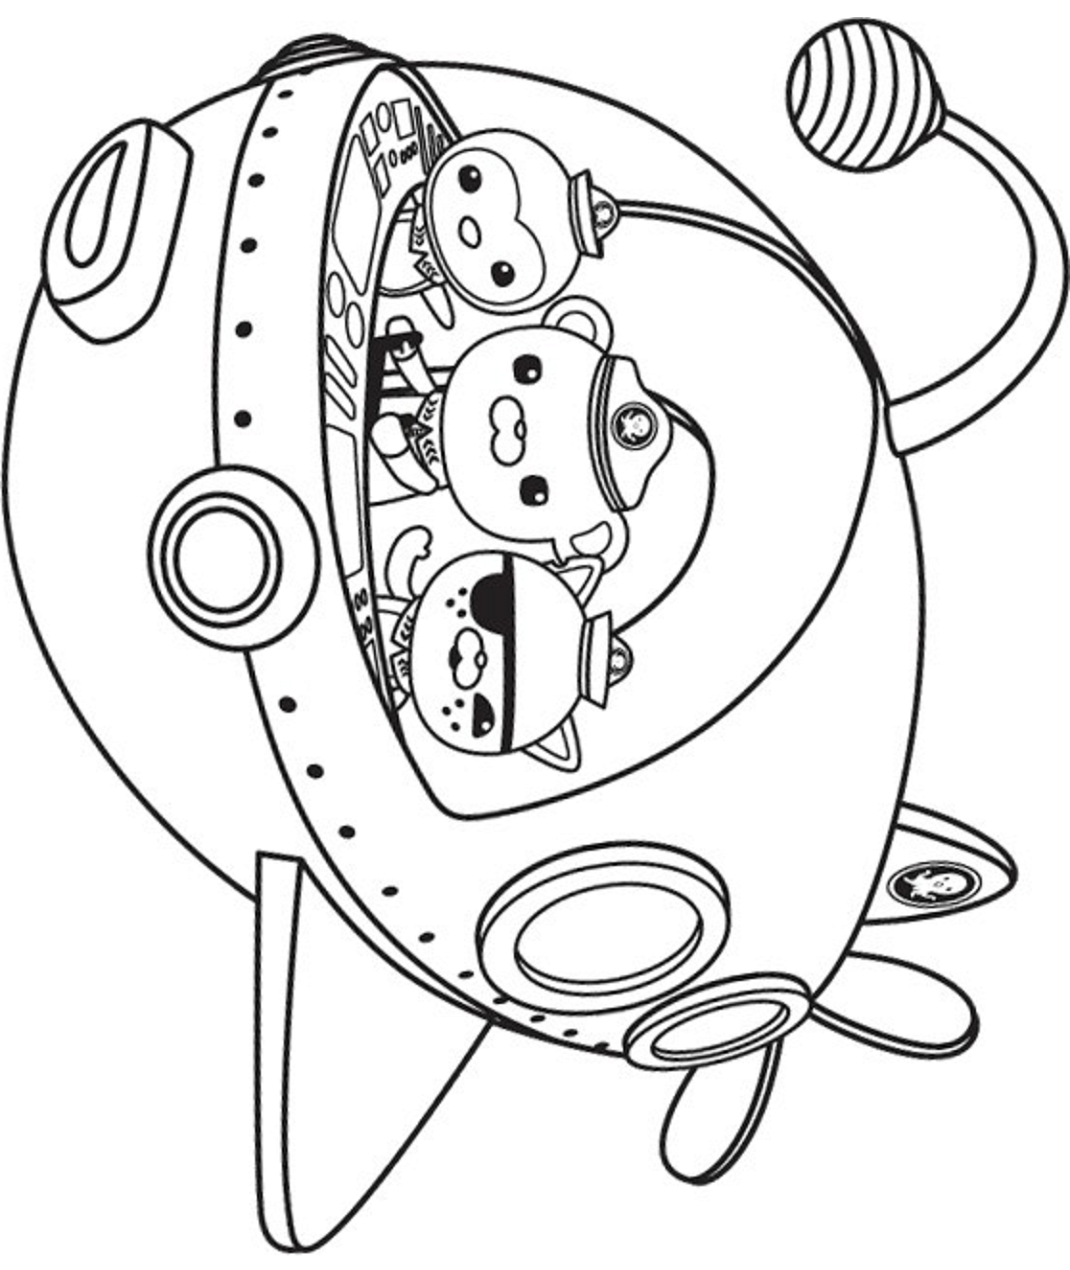 captain barnacles coloring pages pin on fun coloring sheet barnacles pages captain coloring